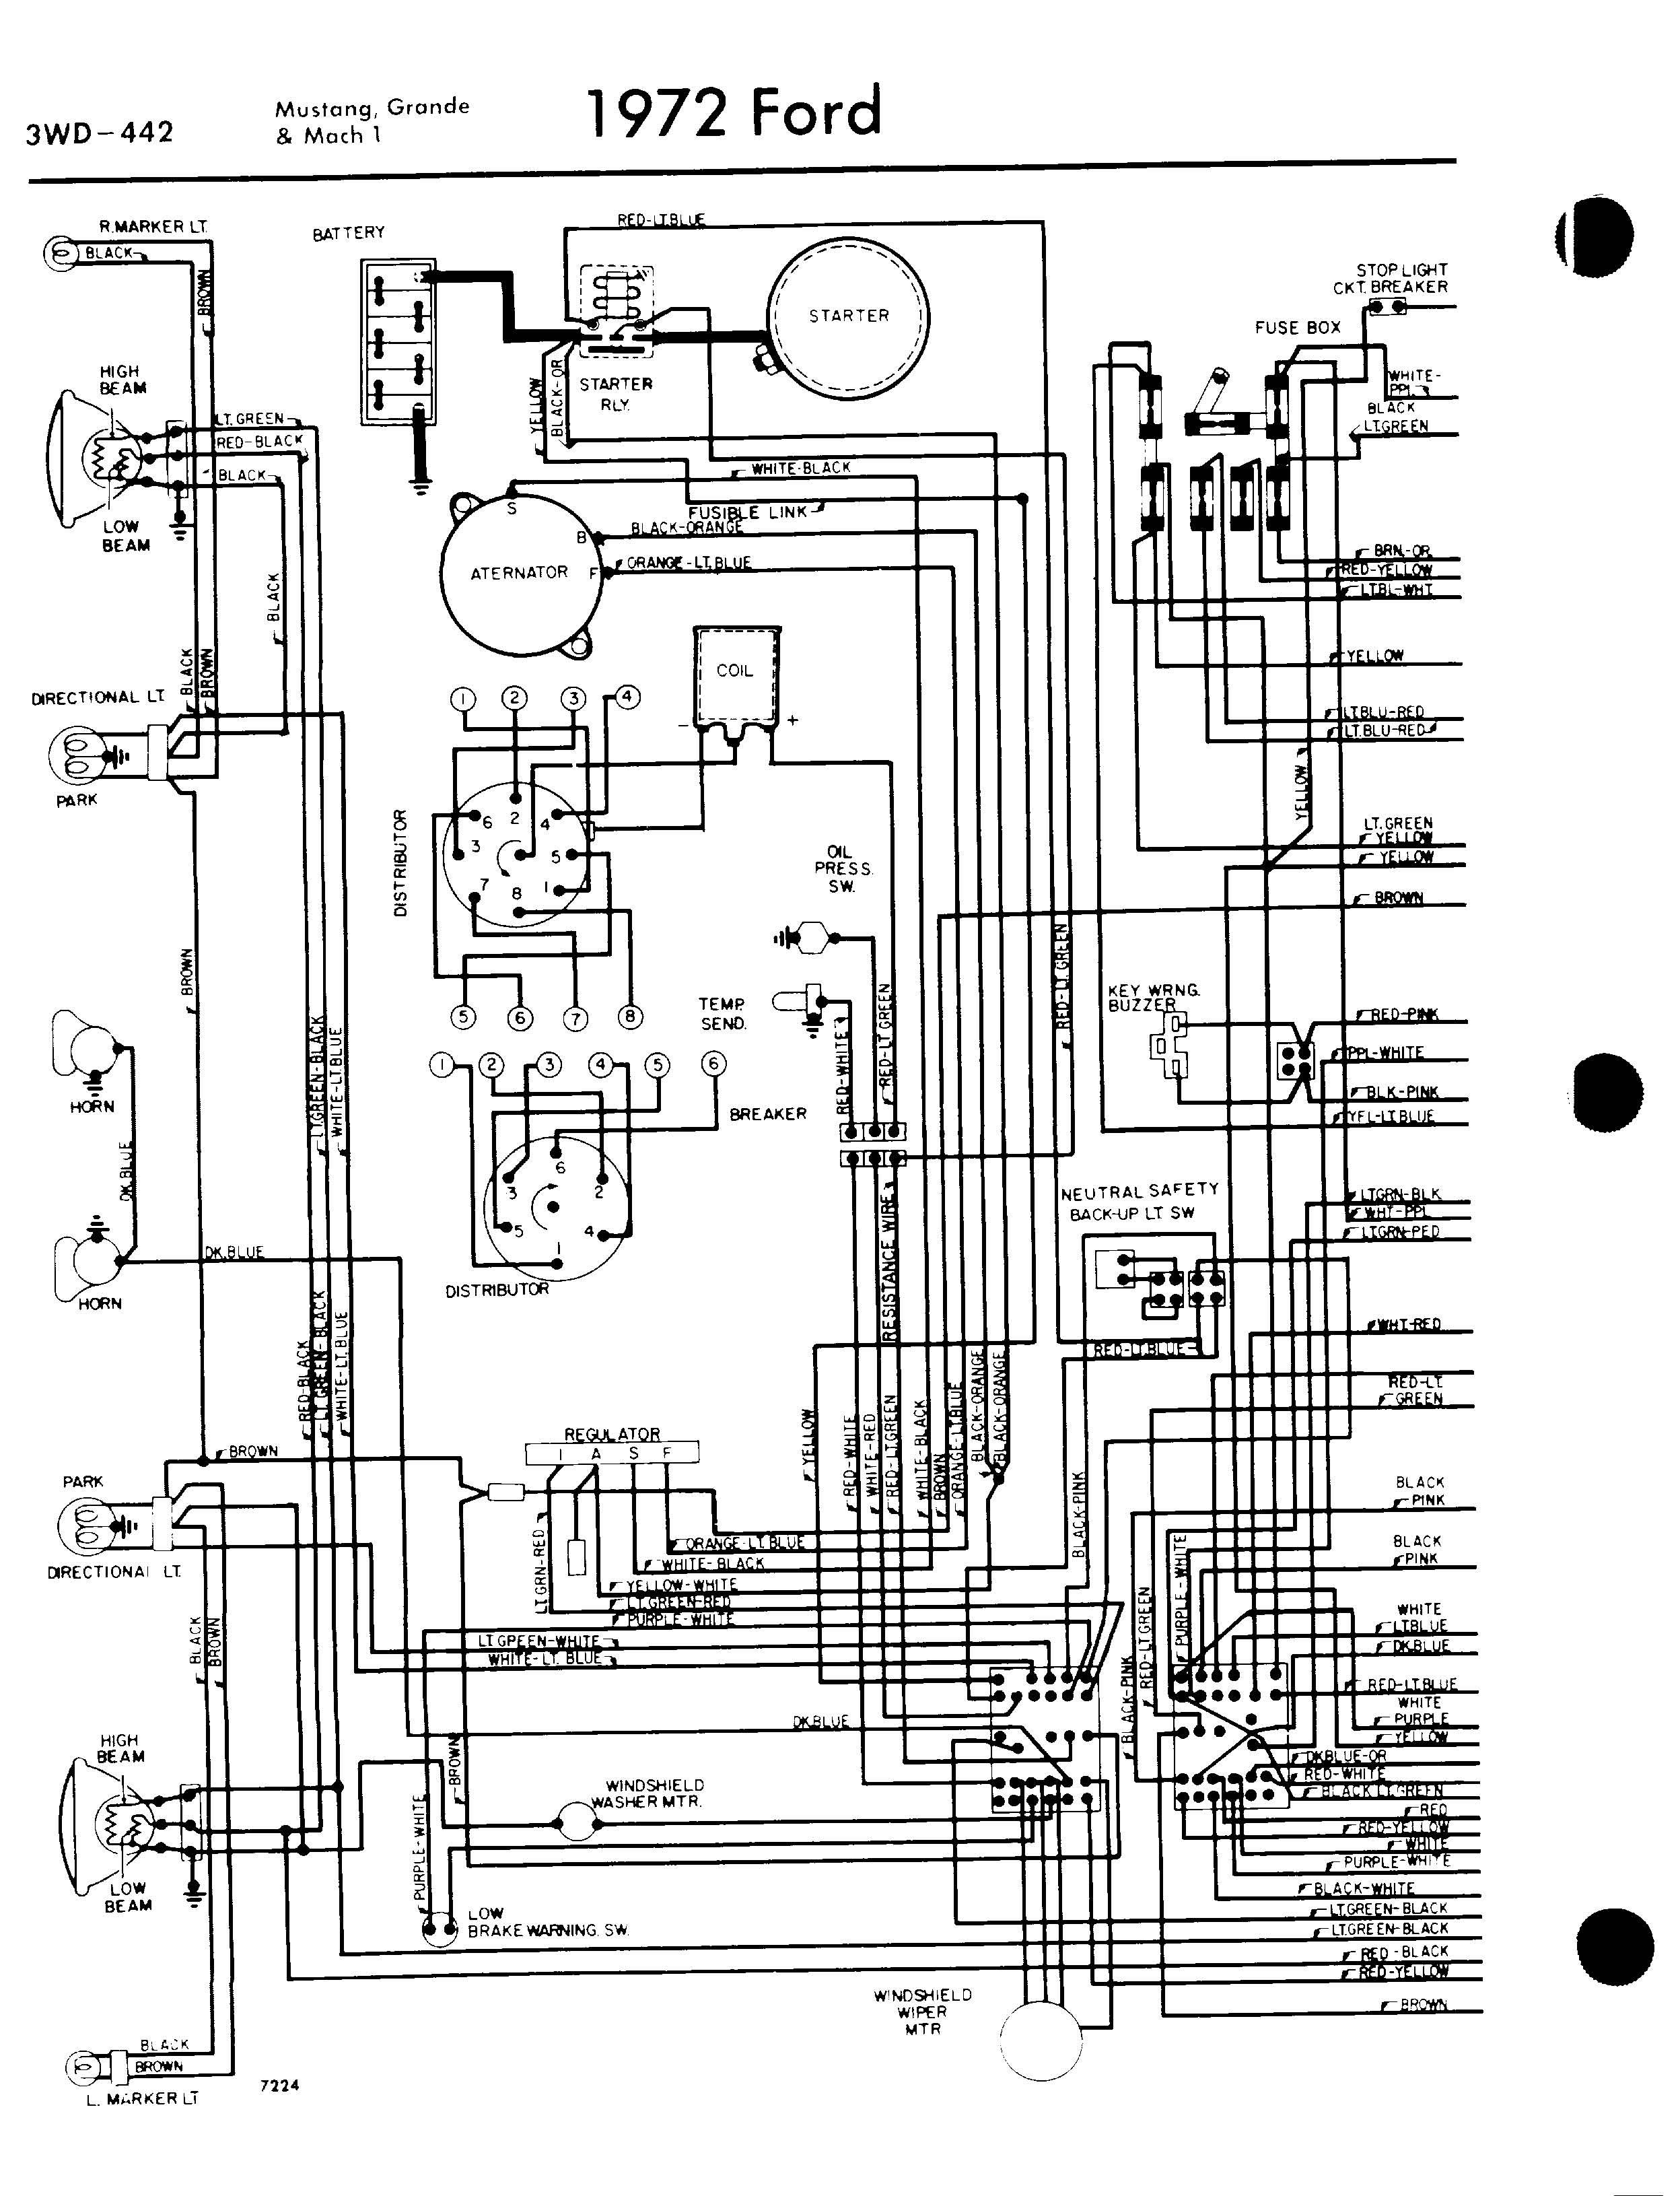 Phenomenal Harness Diagram Ford Mustang Ignition Switch Wiring Diagram 1973 Wiring Cloud Hisonuggs Outletorg